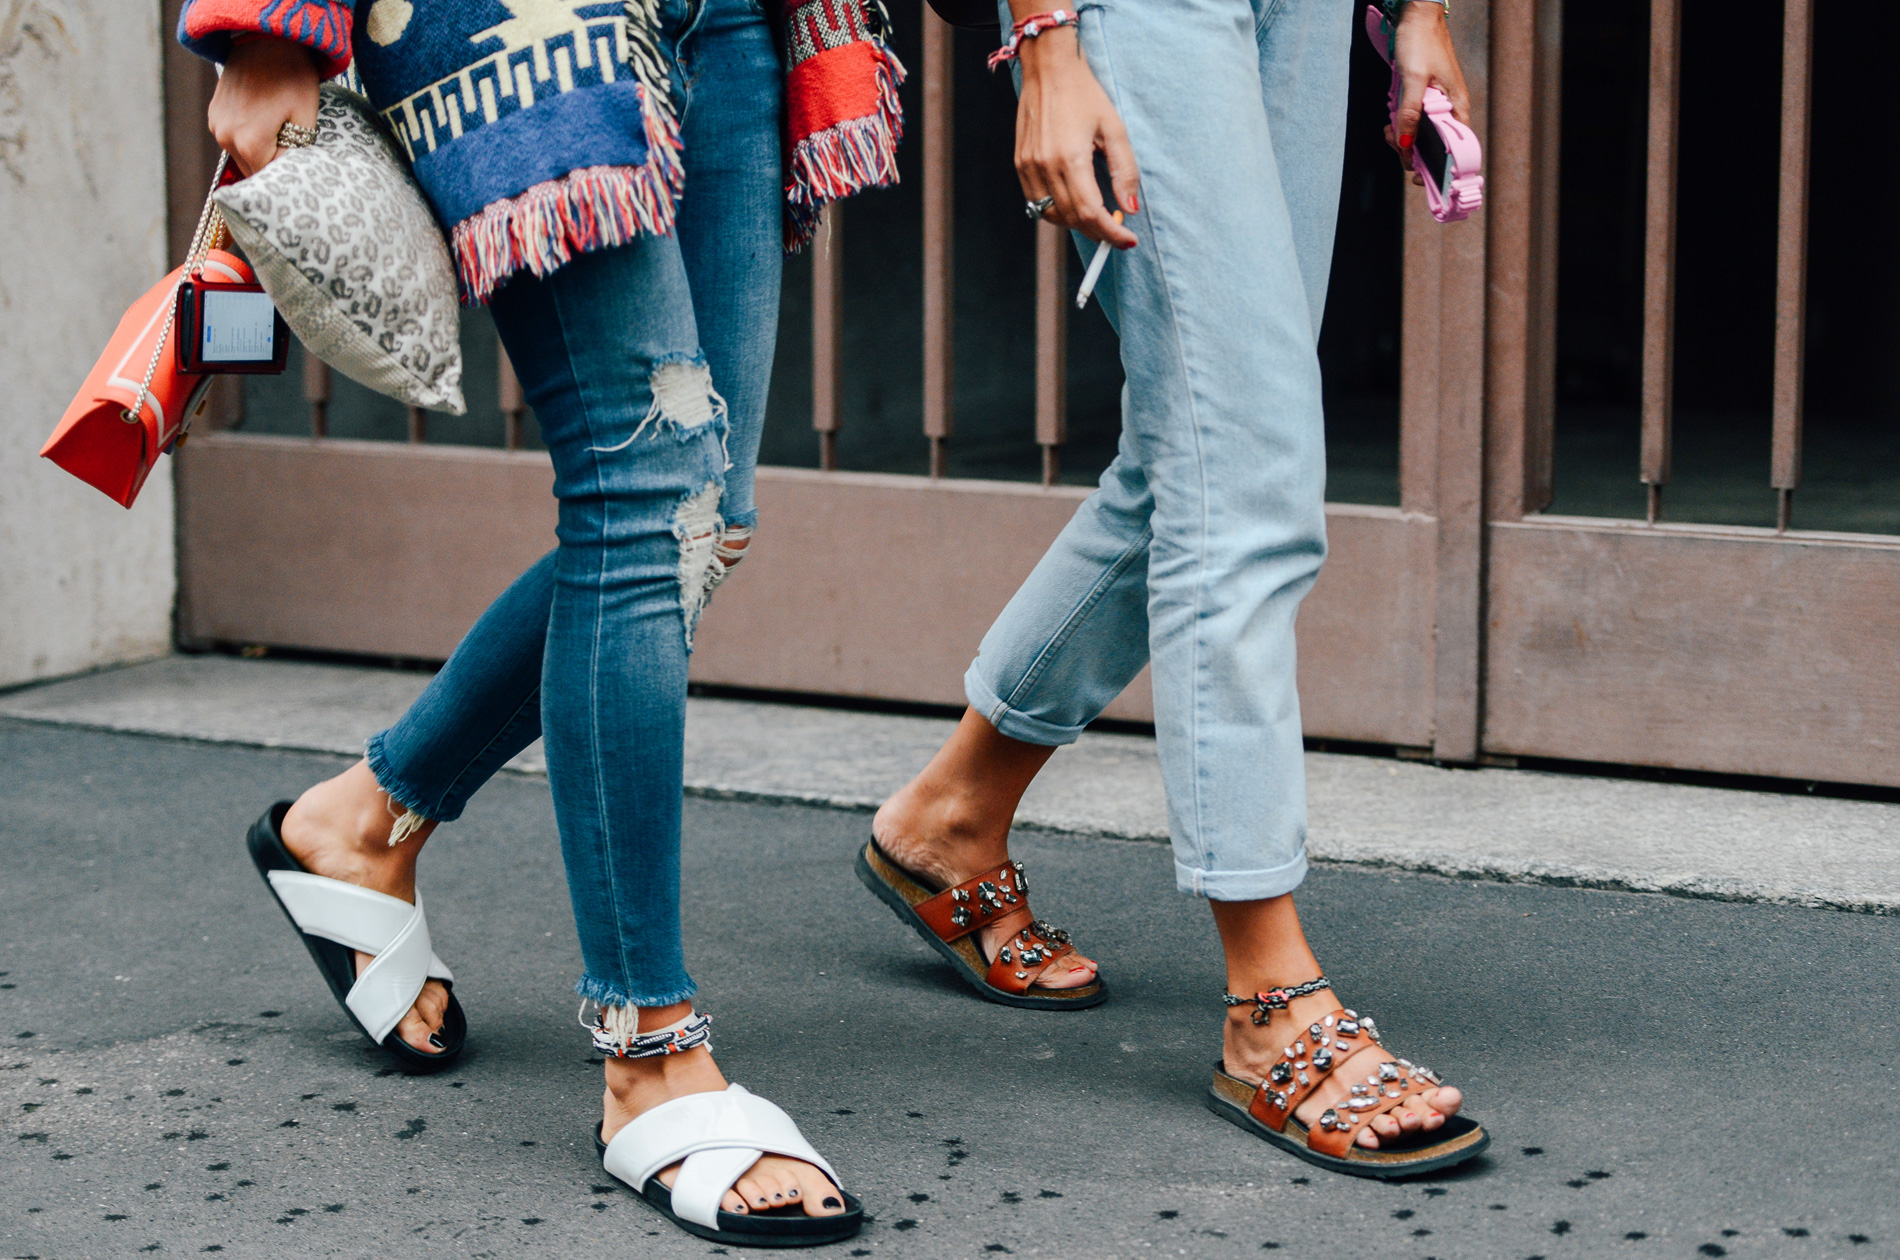 Jeans and shoes fashion